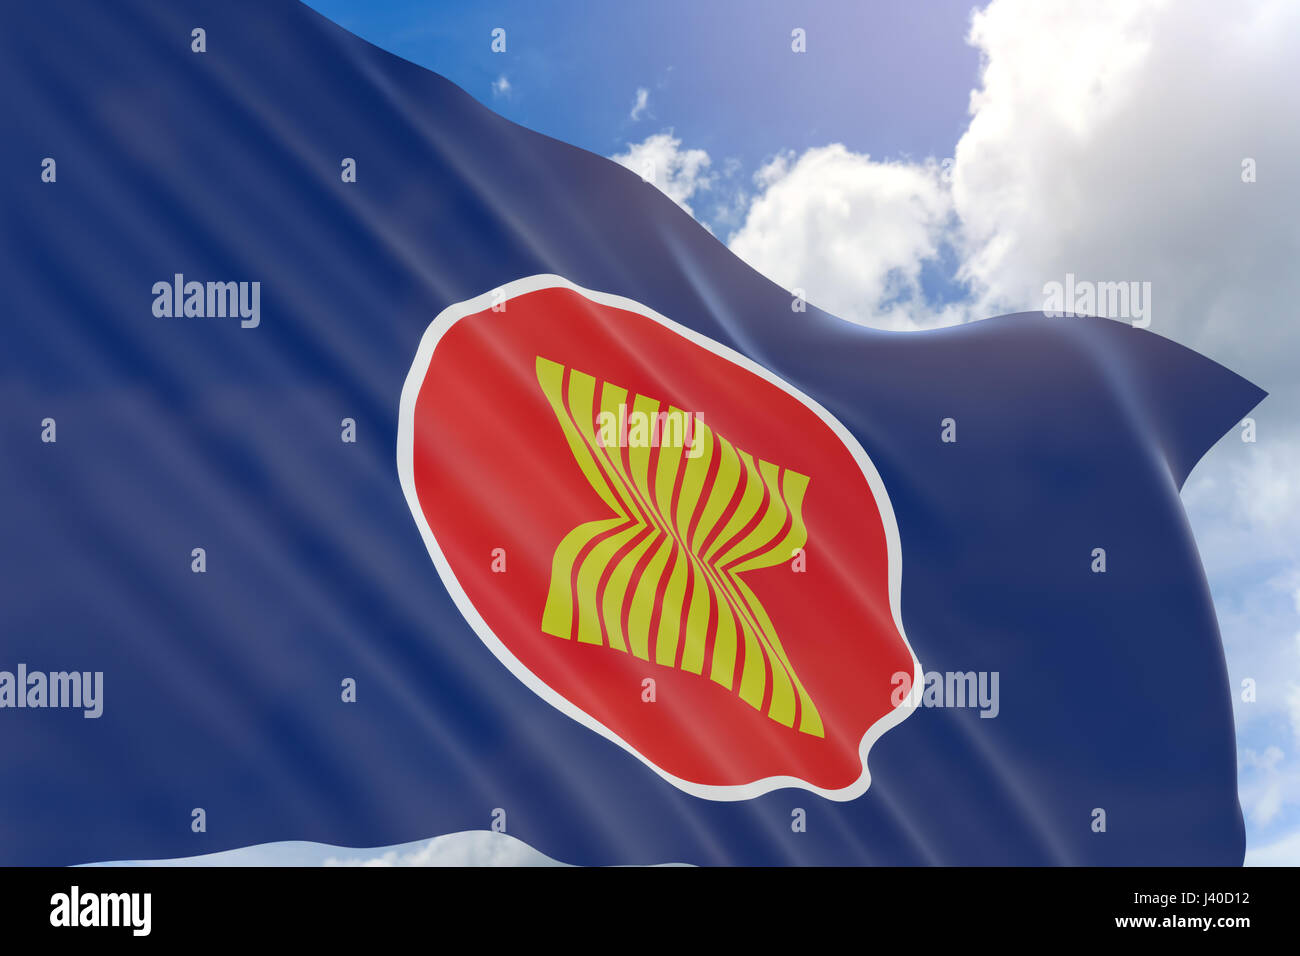 3D rendering of Asean Economic Community flag waving on blue sky background, The flag of the Association of Southeast - Stock Image